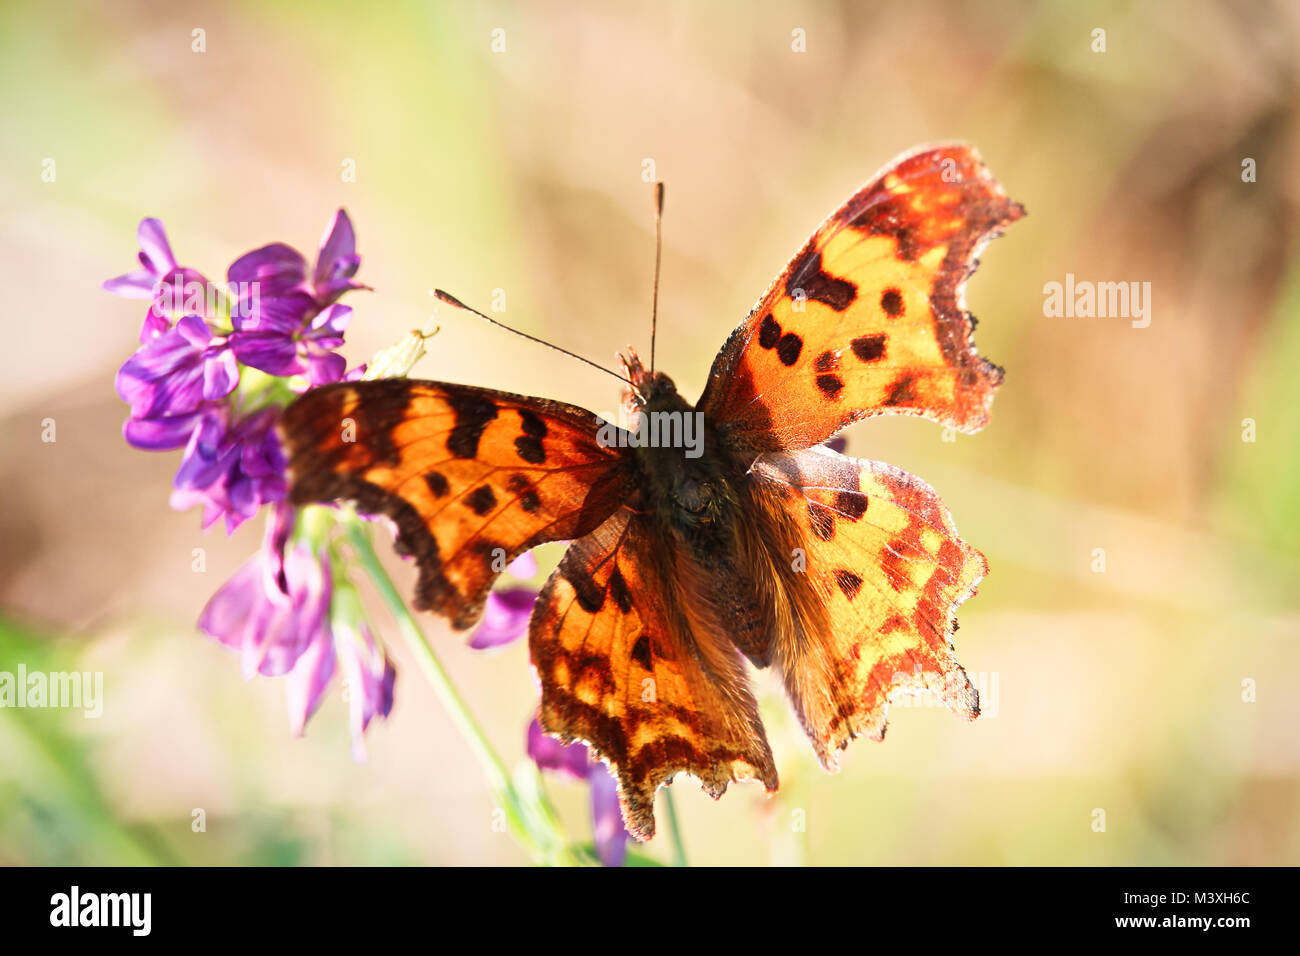 Morning sunlight shines through the wings of a butterfly. - Stock Image